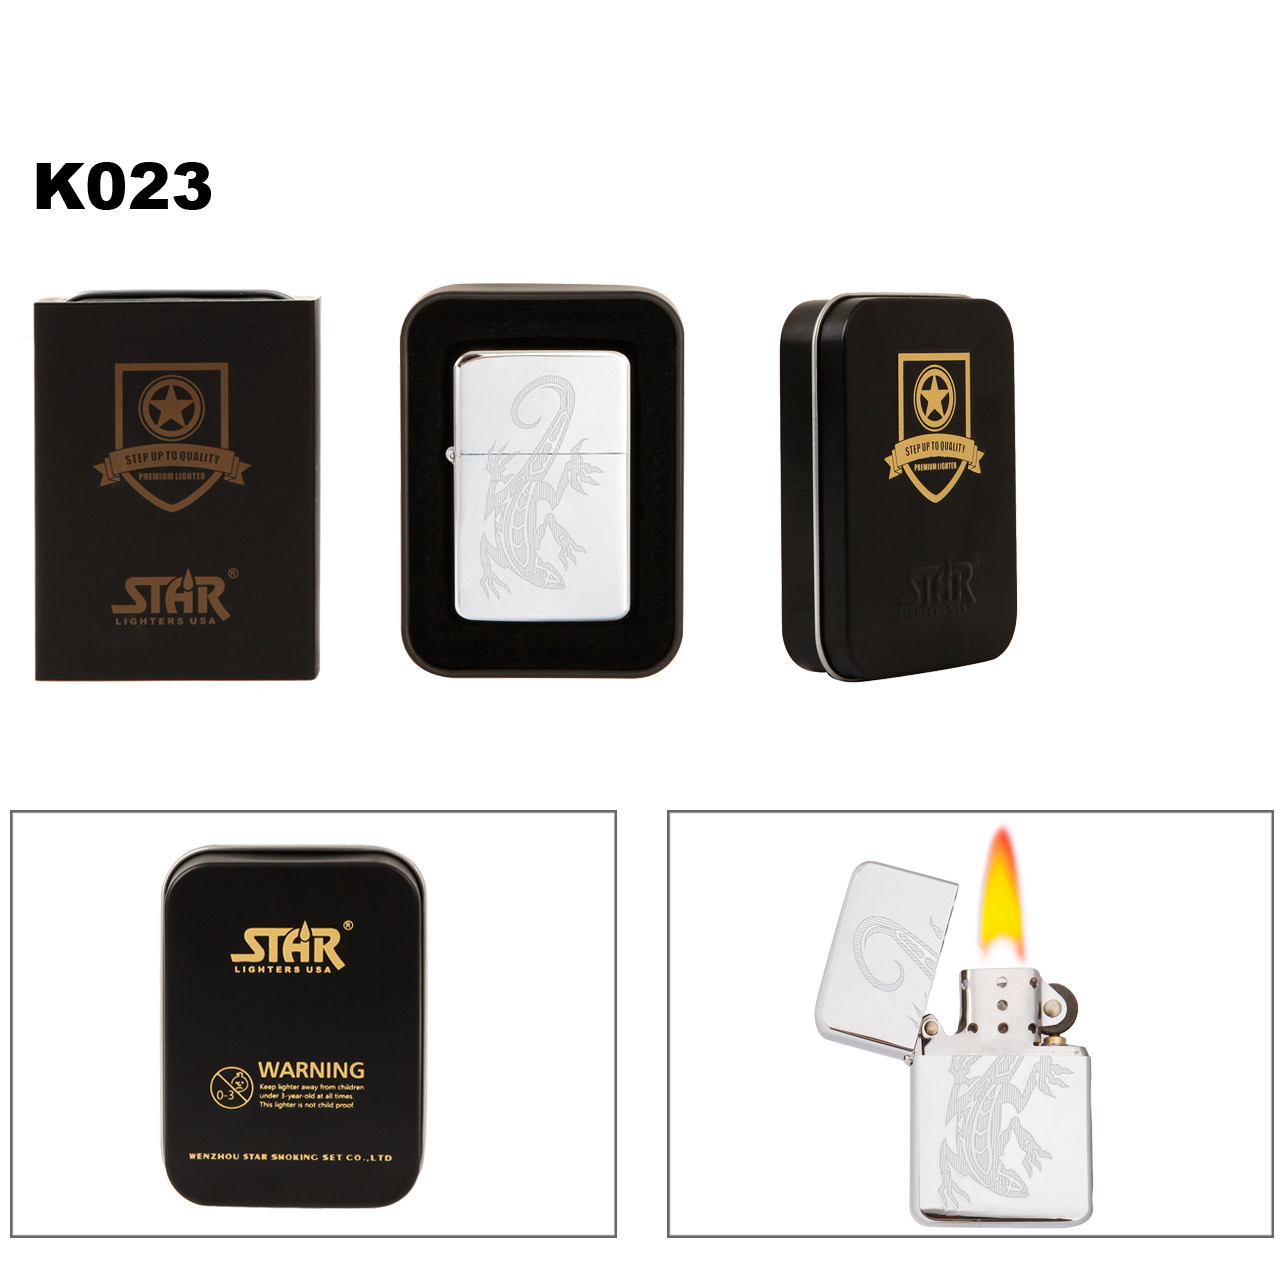 Brass Lighter ~ Lighter Fluid NOT Included K023 (1 pc.) Etched Lizard on Polished Chrome Finish